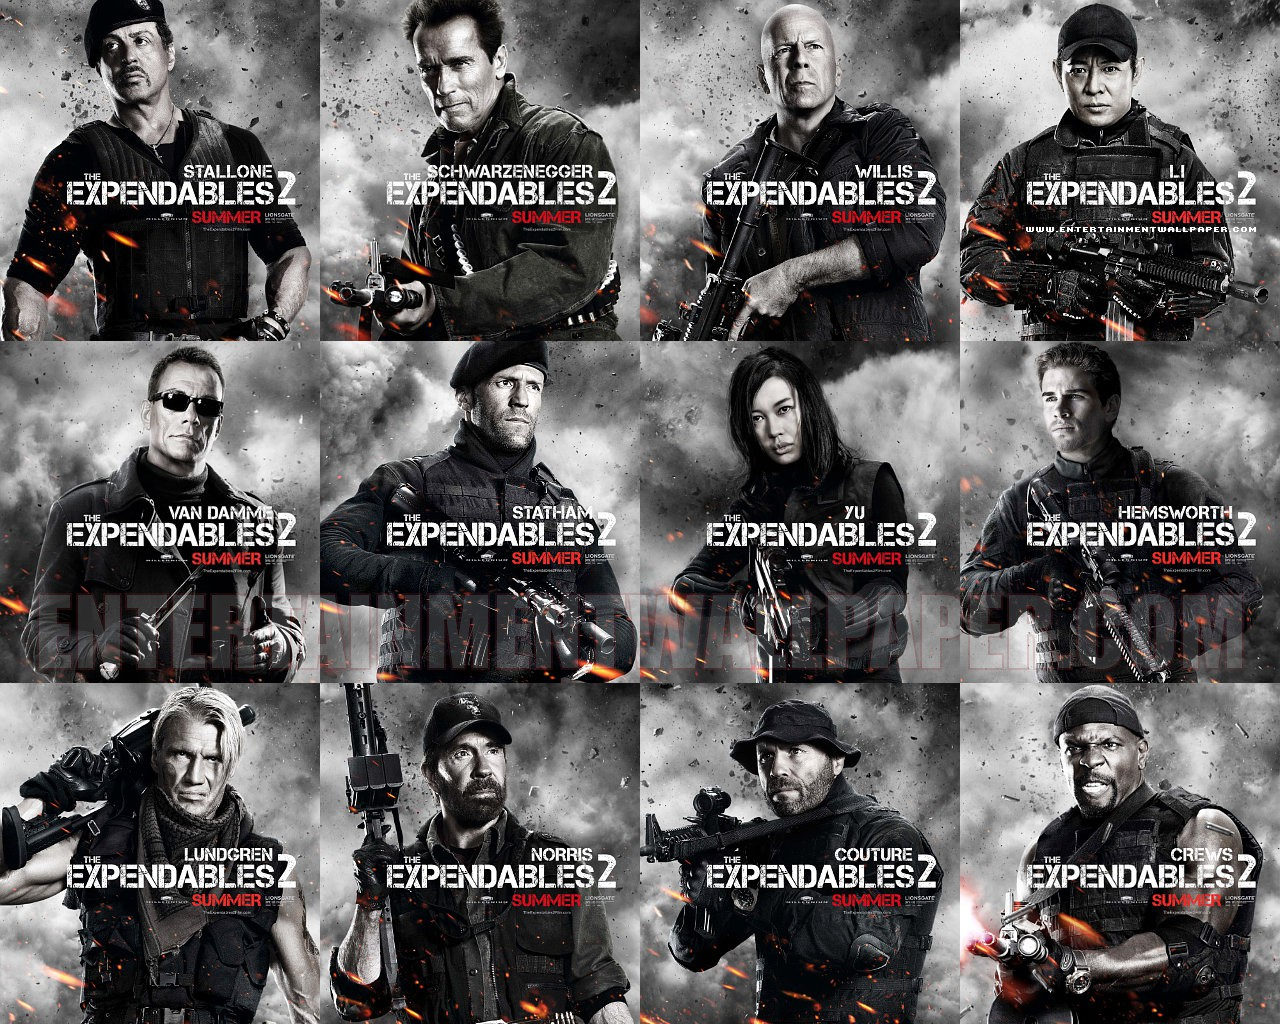 Download The Expendables 3 Full Movie HD